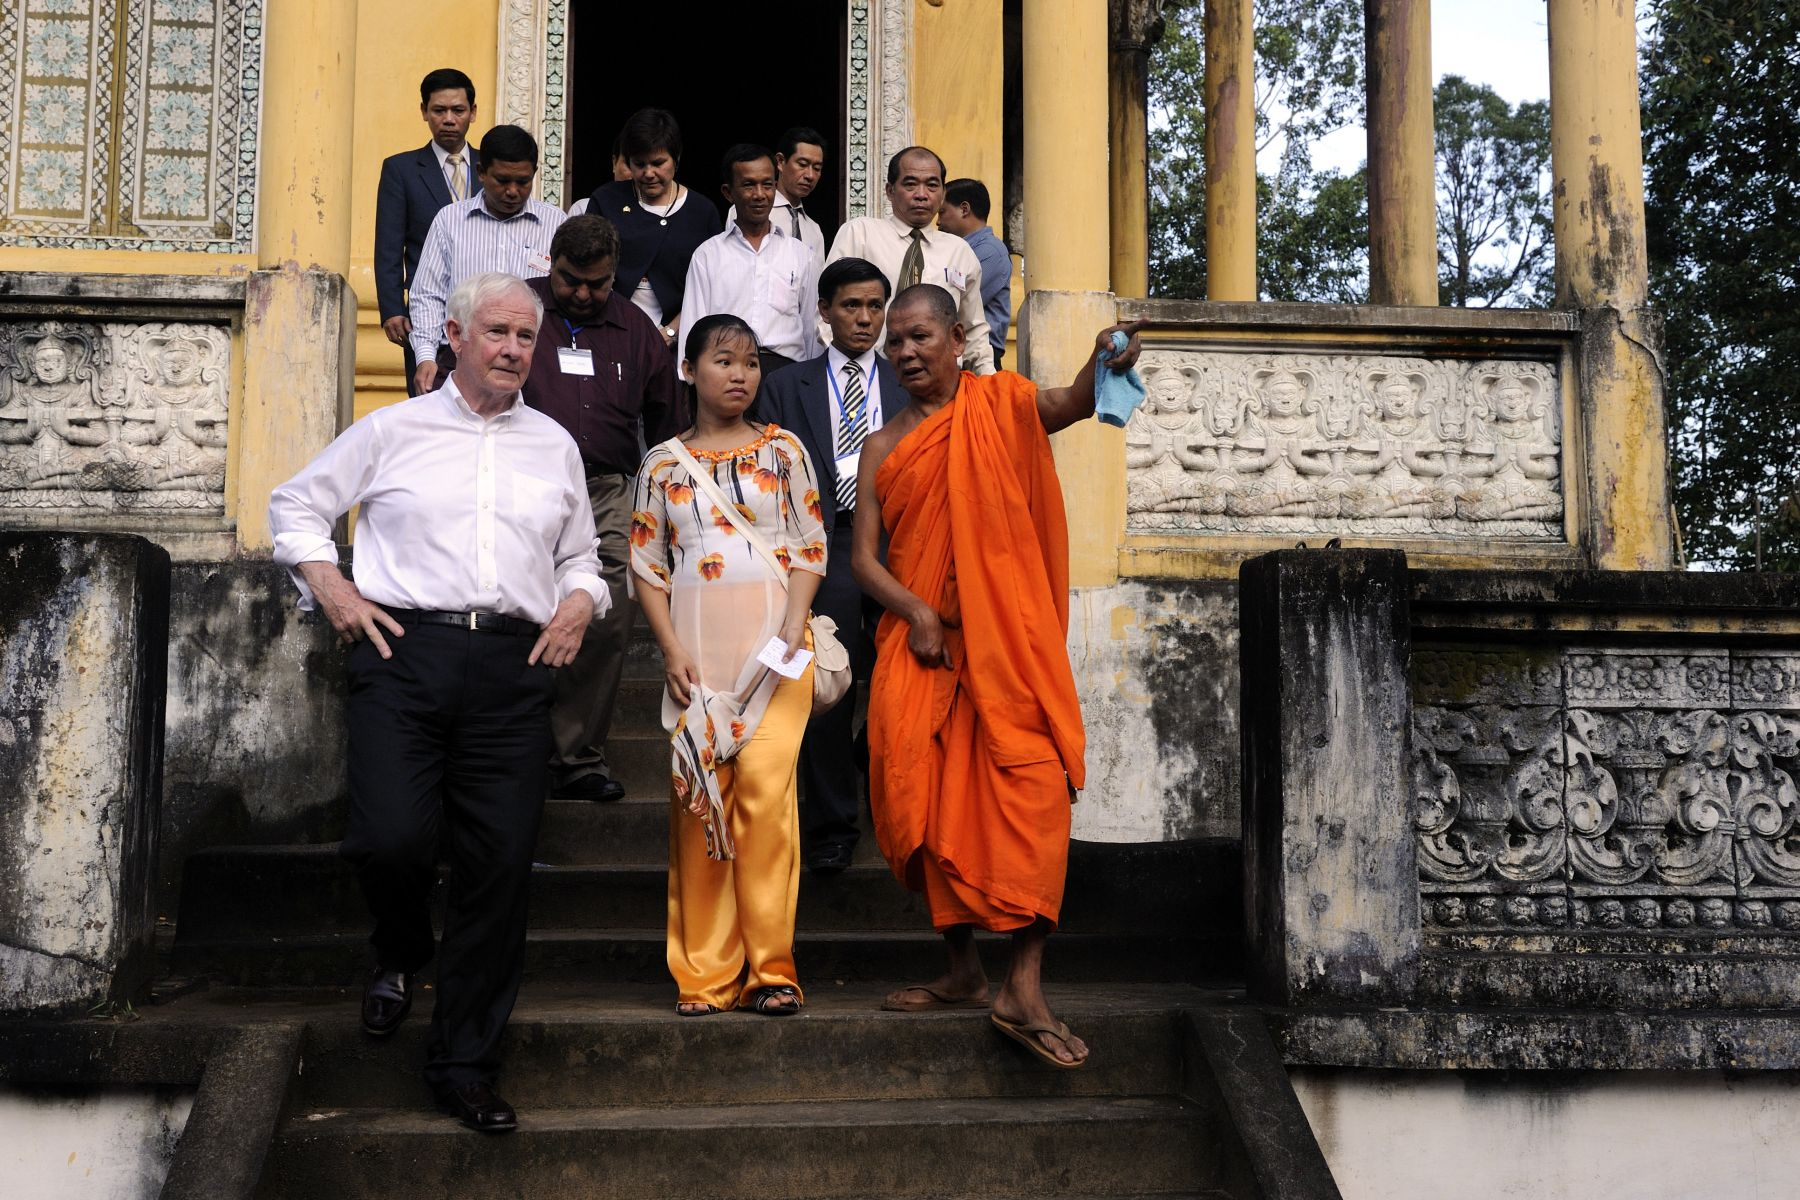 His Excellency toured the Tac Rong Khmer Temple, which was built in 1224. It is considered the oldest among some 90 Khmer temples located in the Soc Trang province.